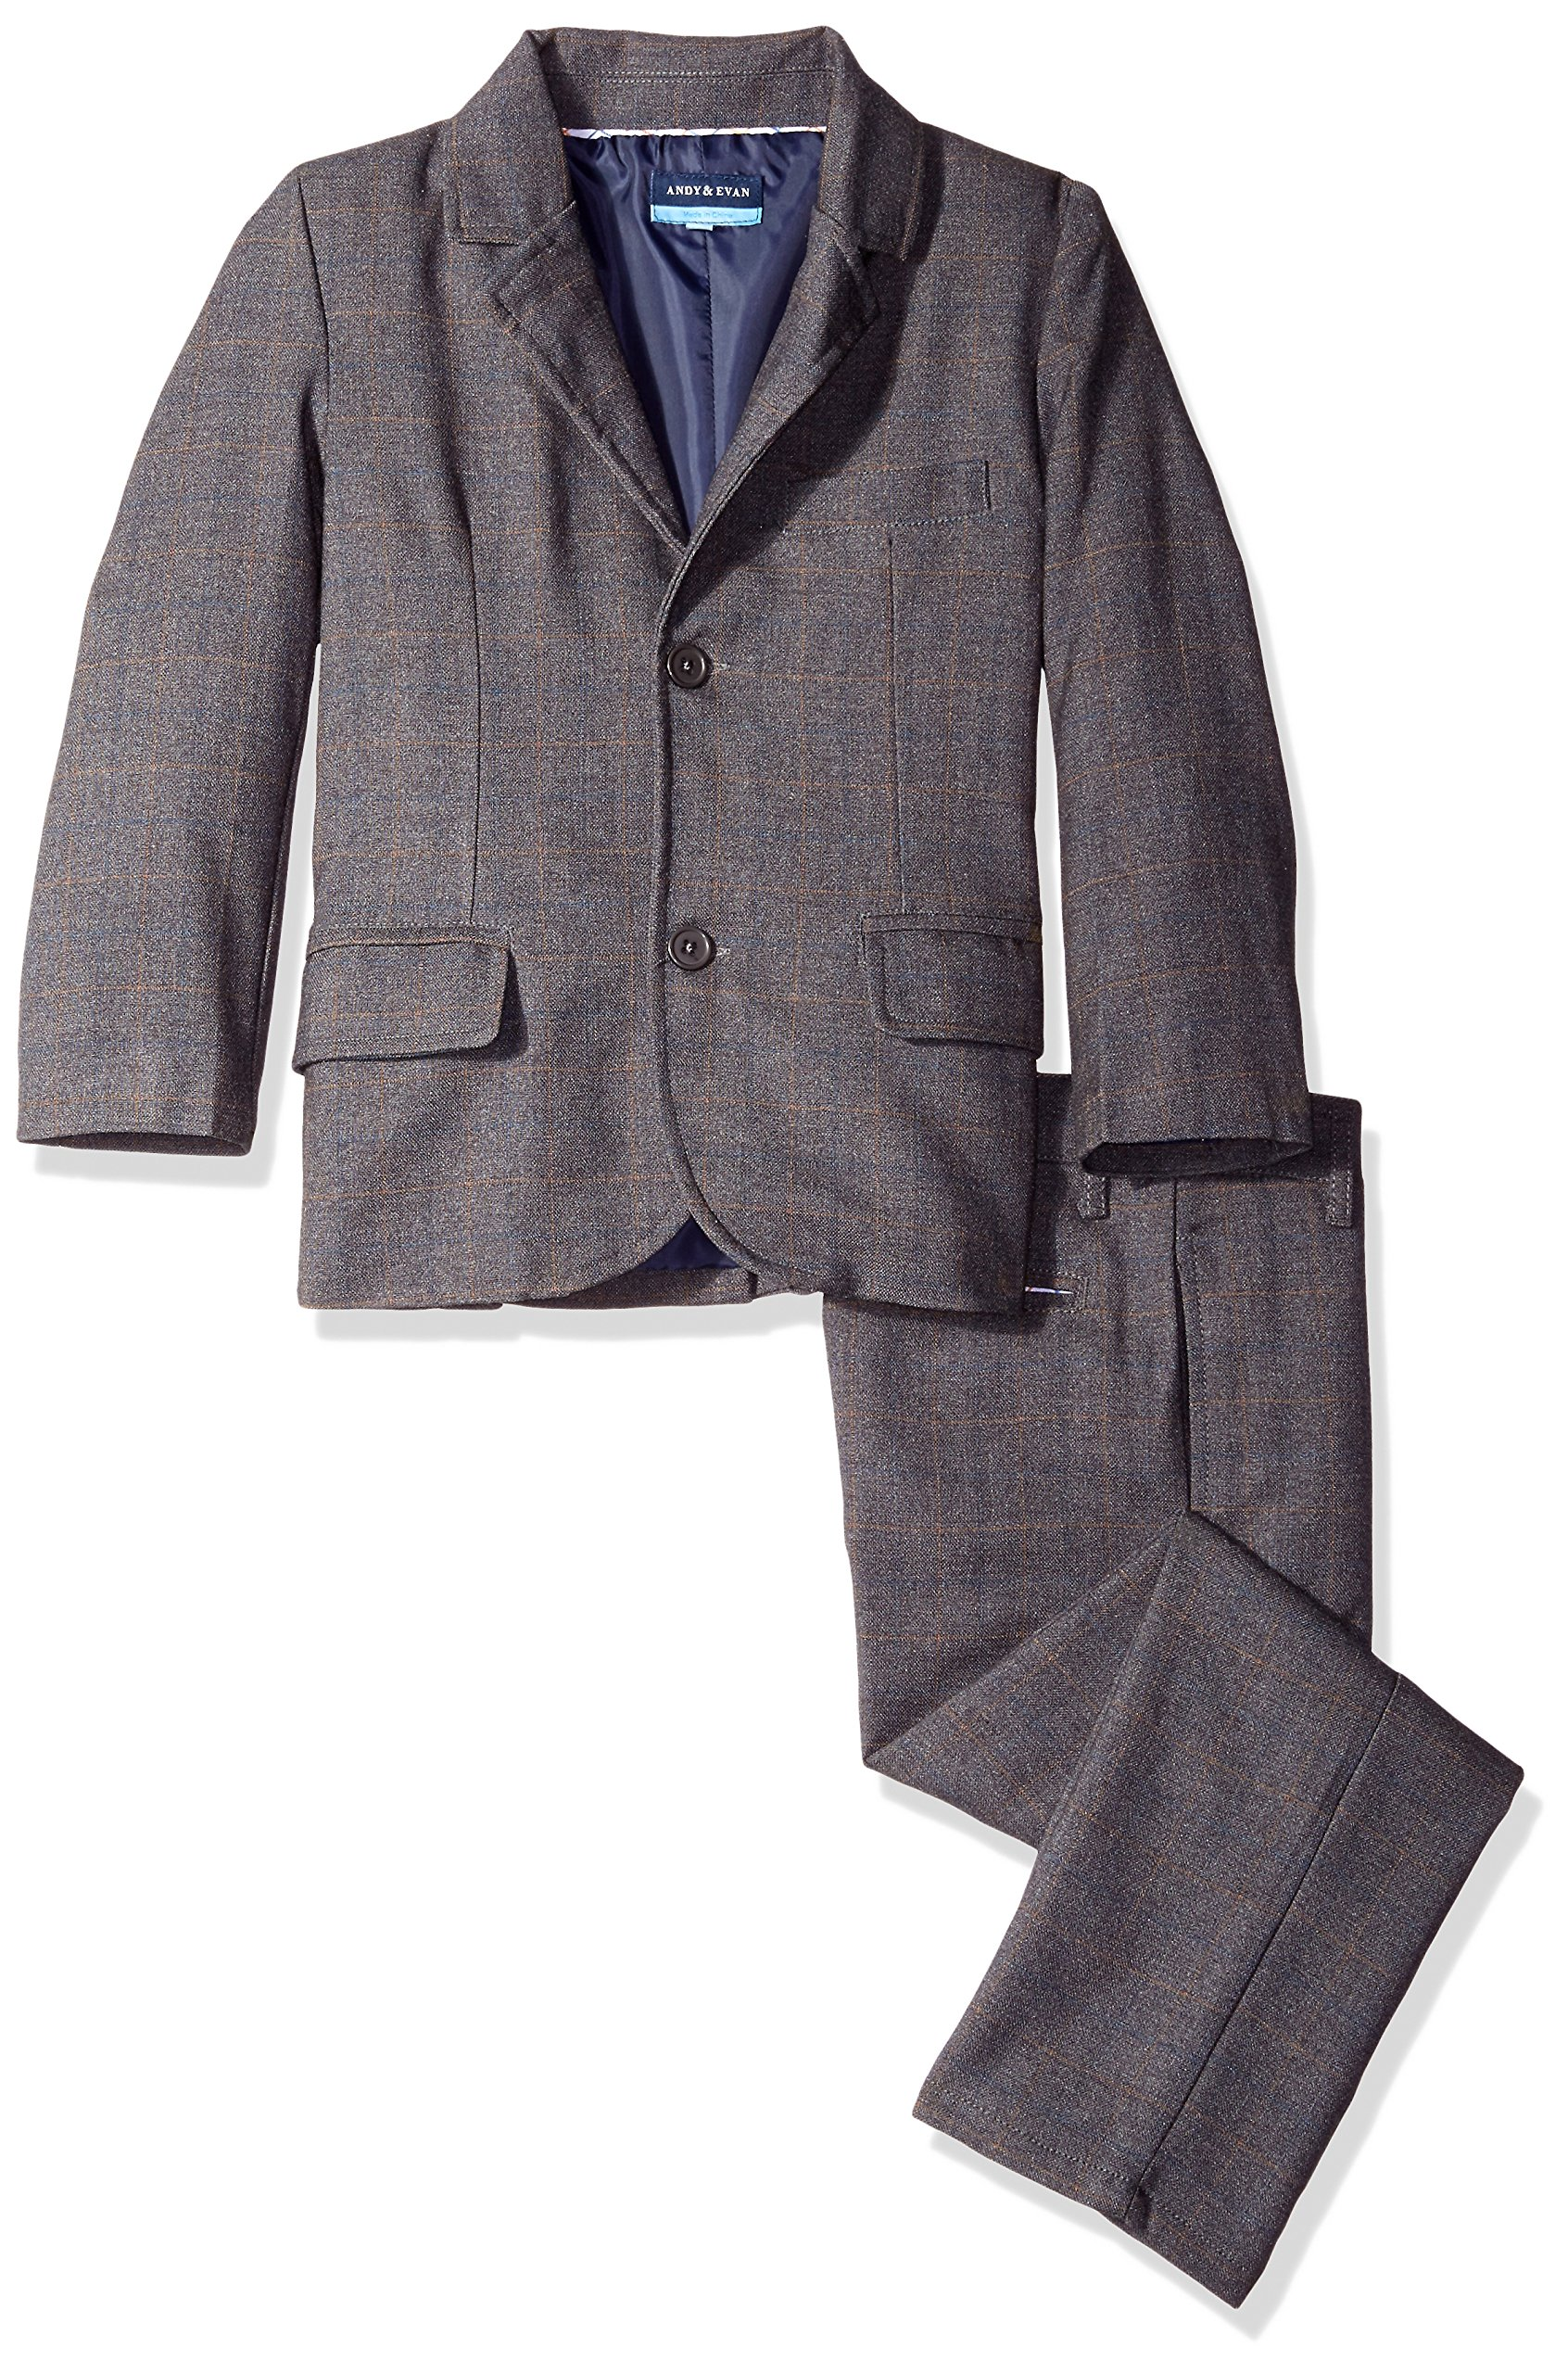 Andy & Evan Little Boys' Windowpane Check Suit 2 Piece Set, Grey, 7 by Andy & Evan